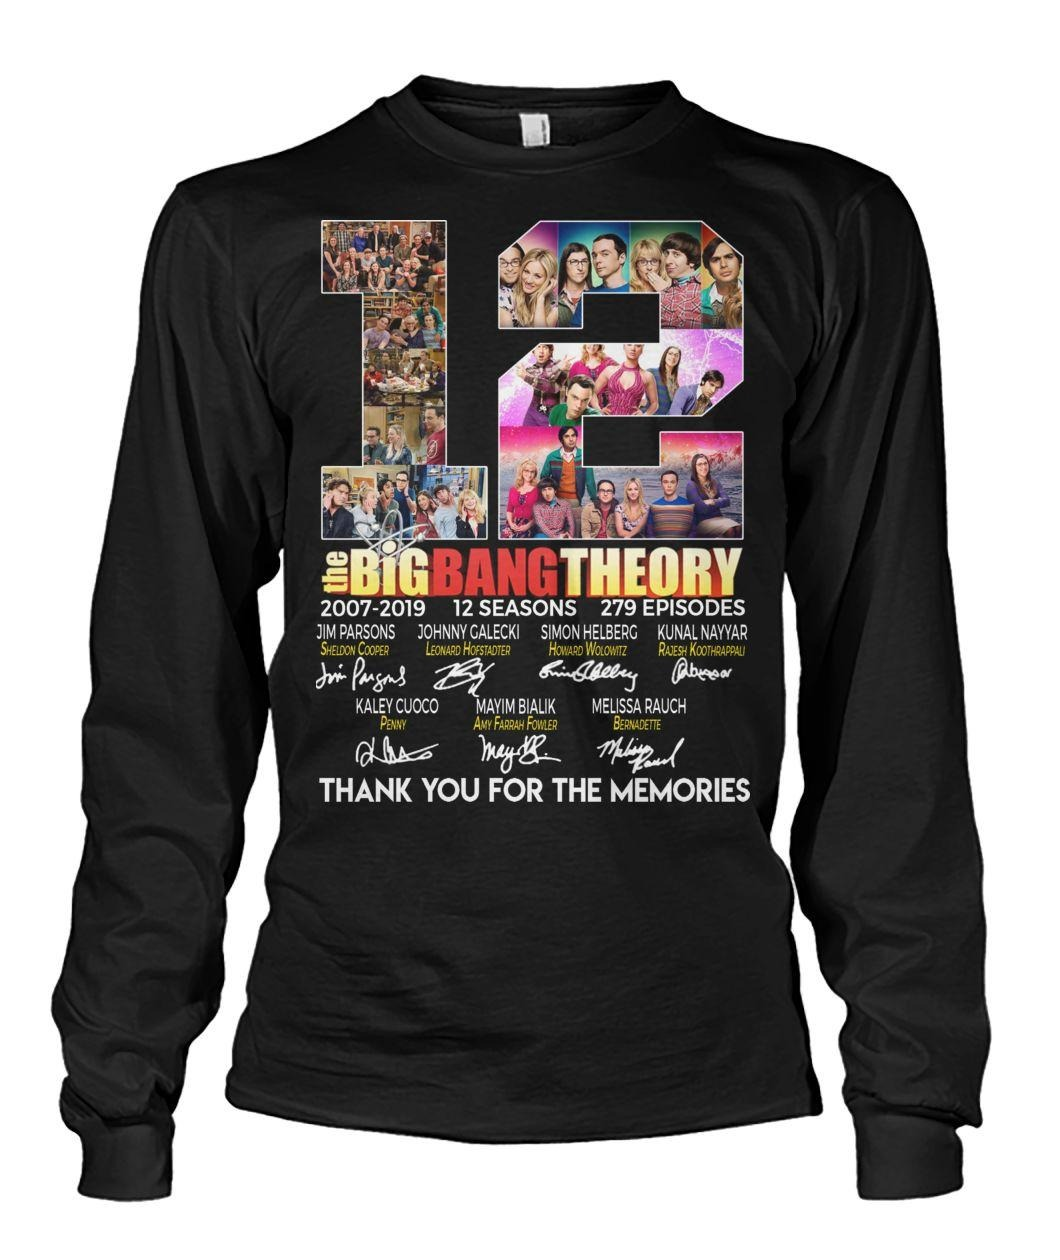 12 Years of The Big Bang Theory 2007-2019 12 seasons 279 episodes signatures shirt